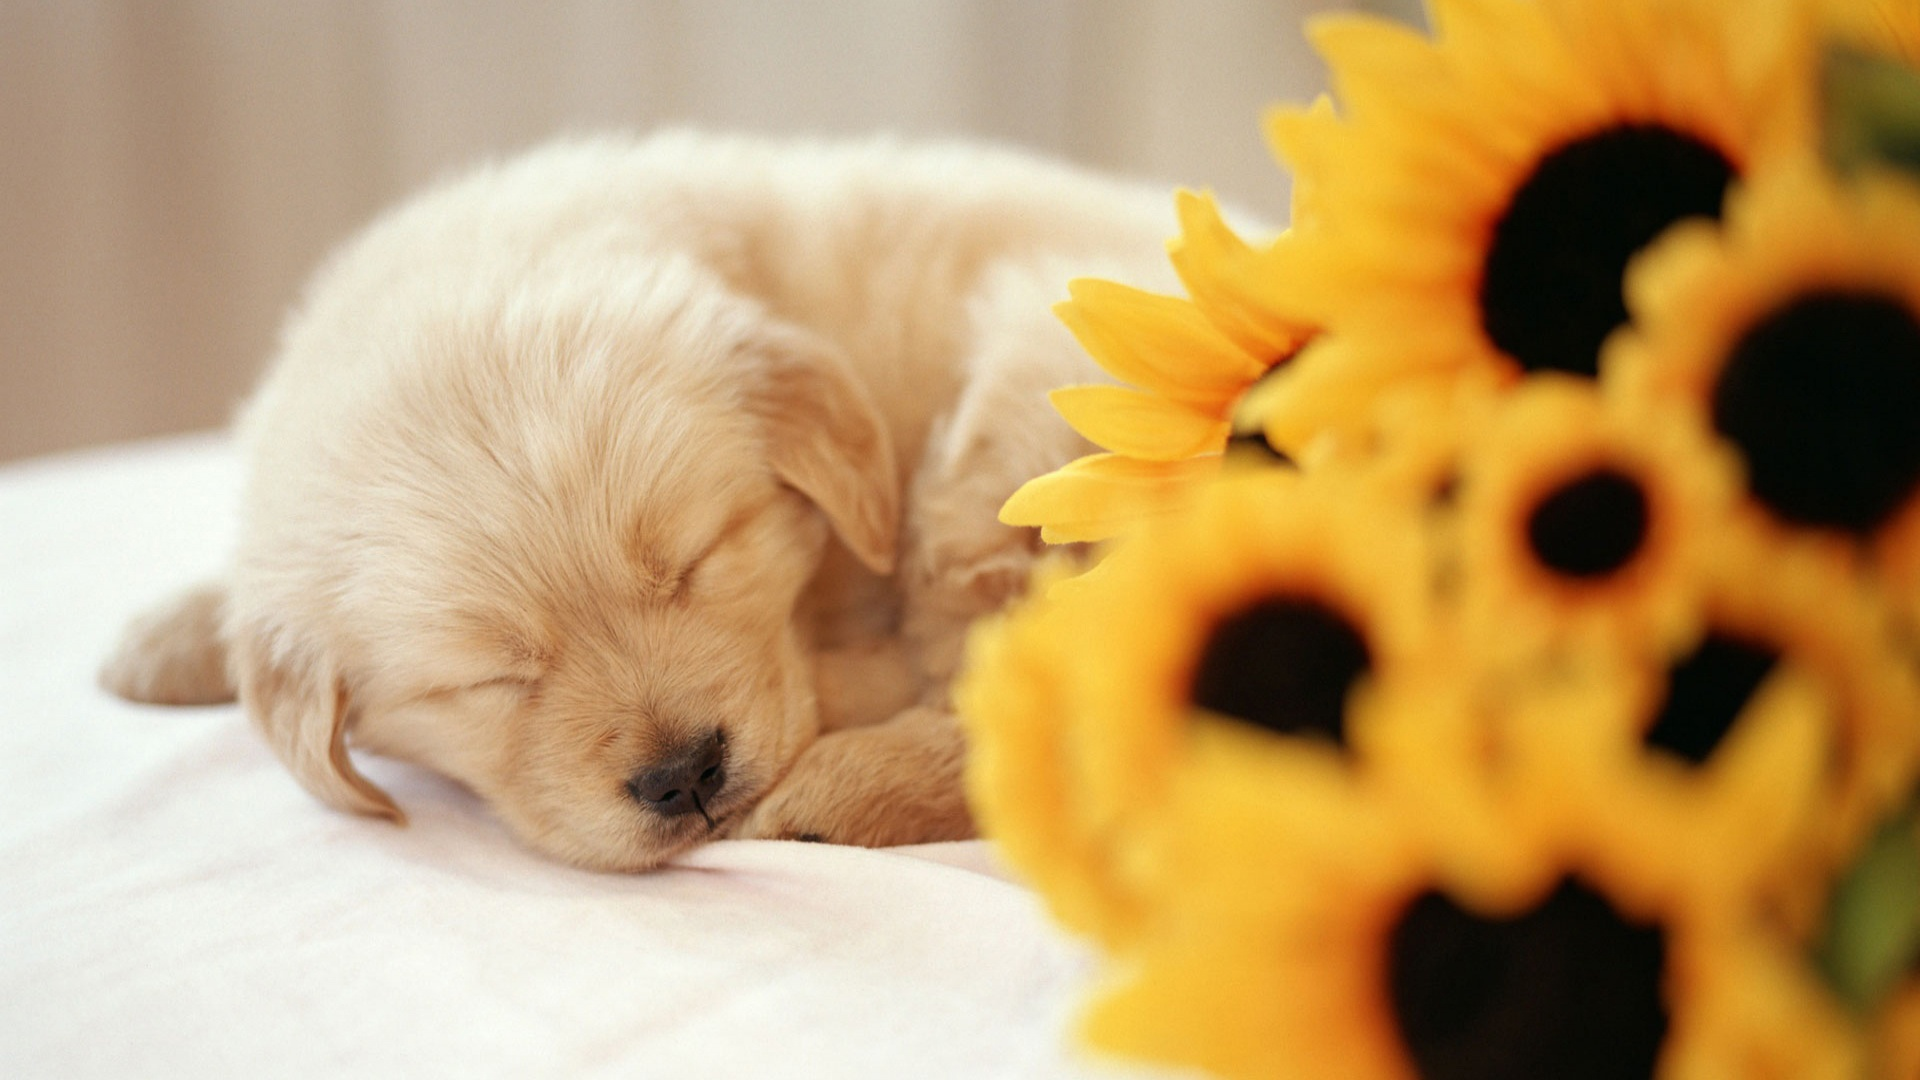 Sleeping Puppy Wallpapers